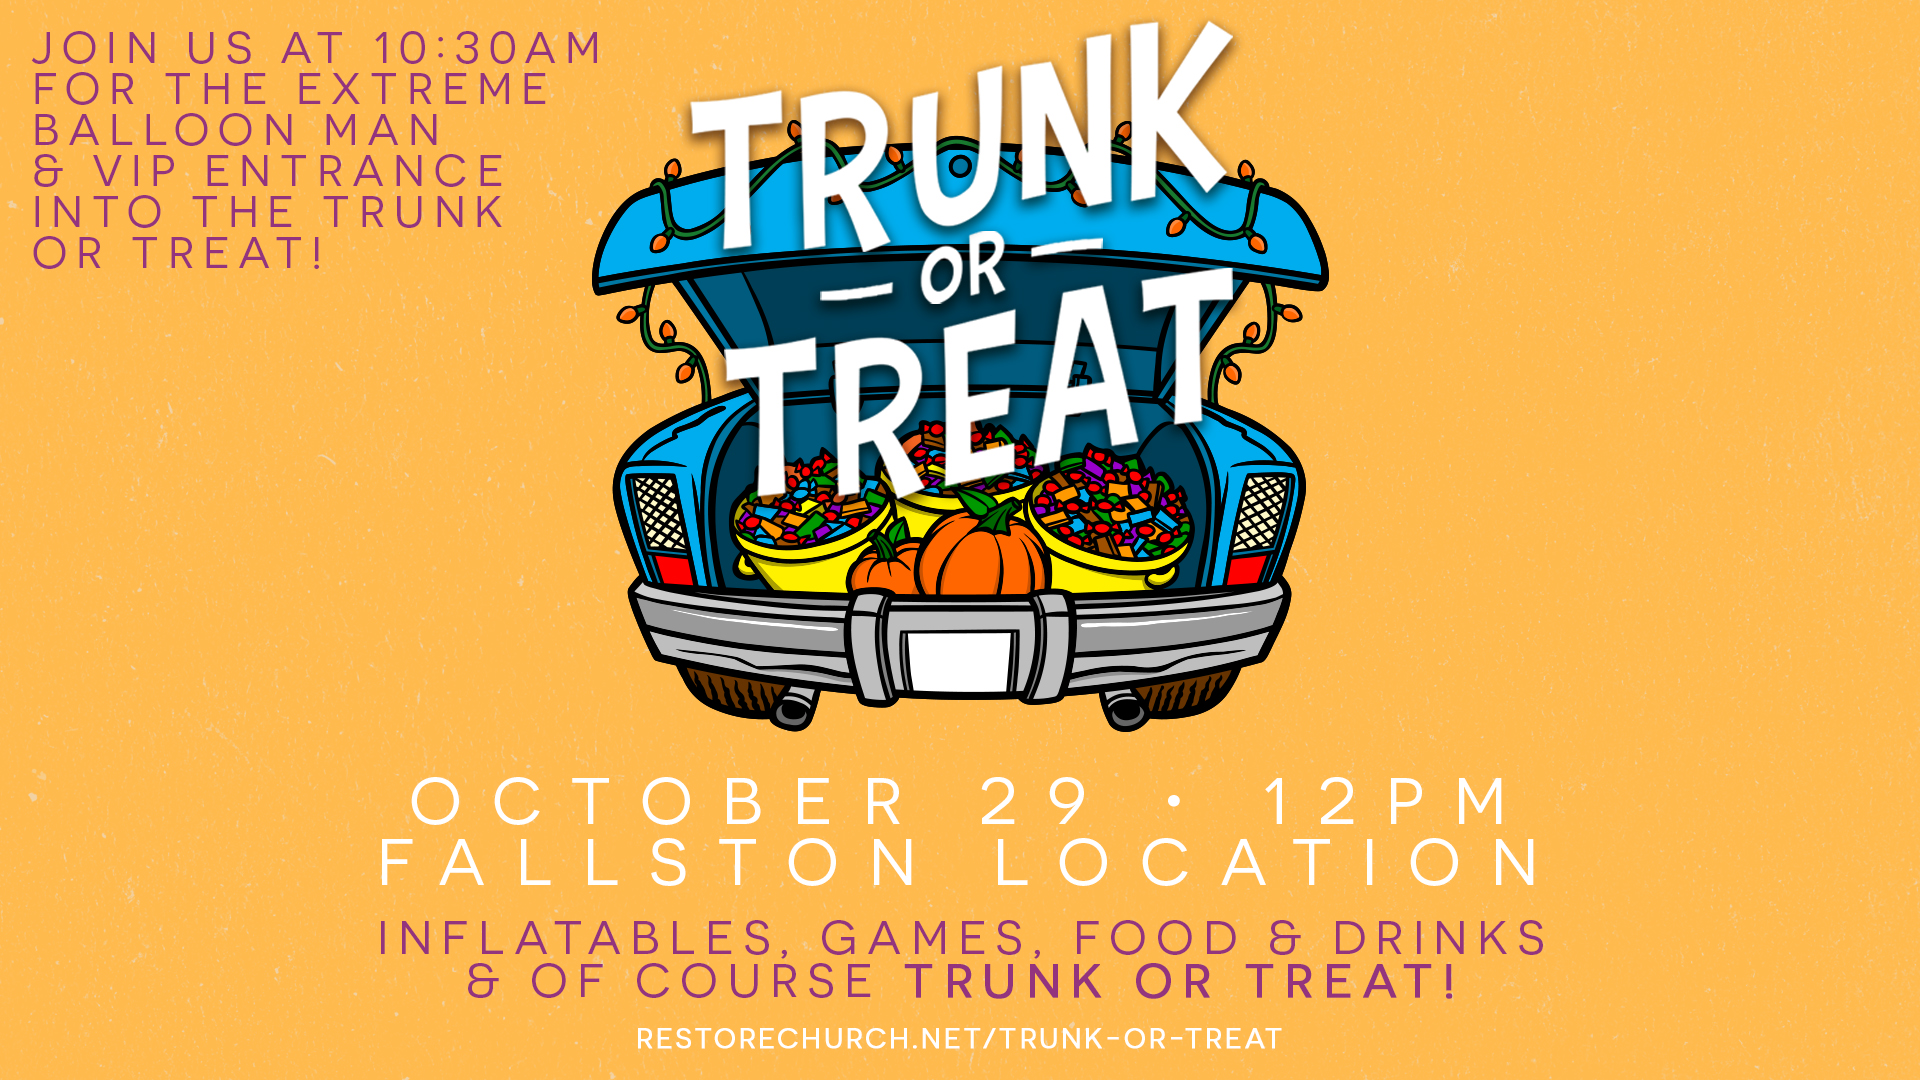 TrunkOrTreat-Fallston.jpg